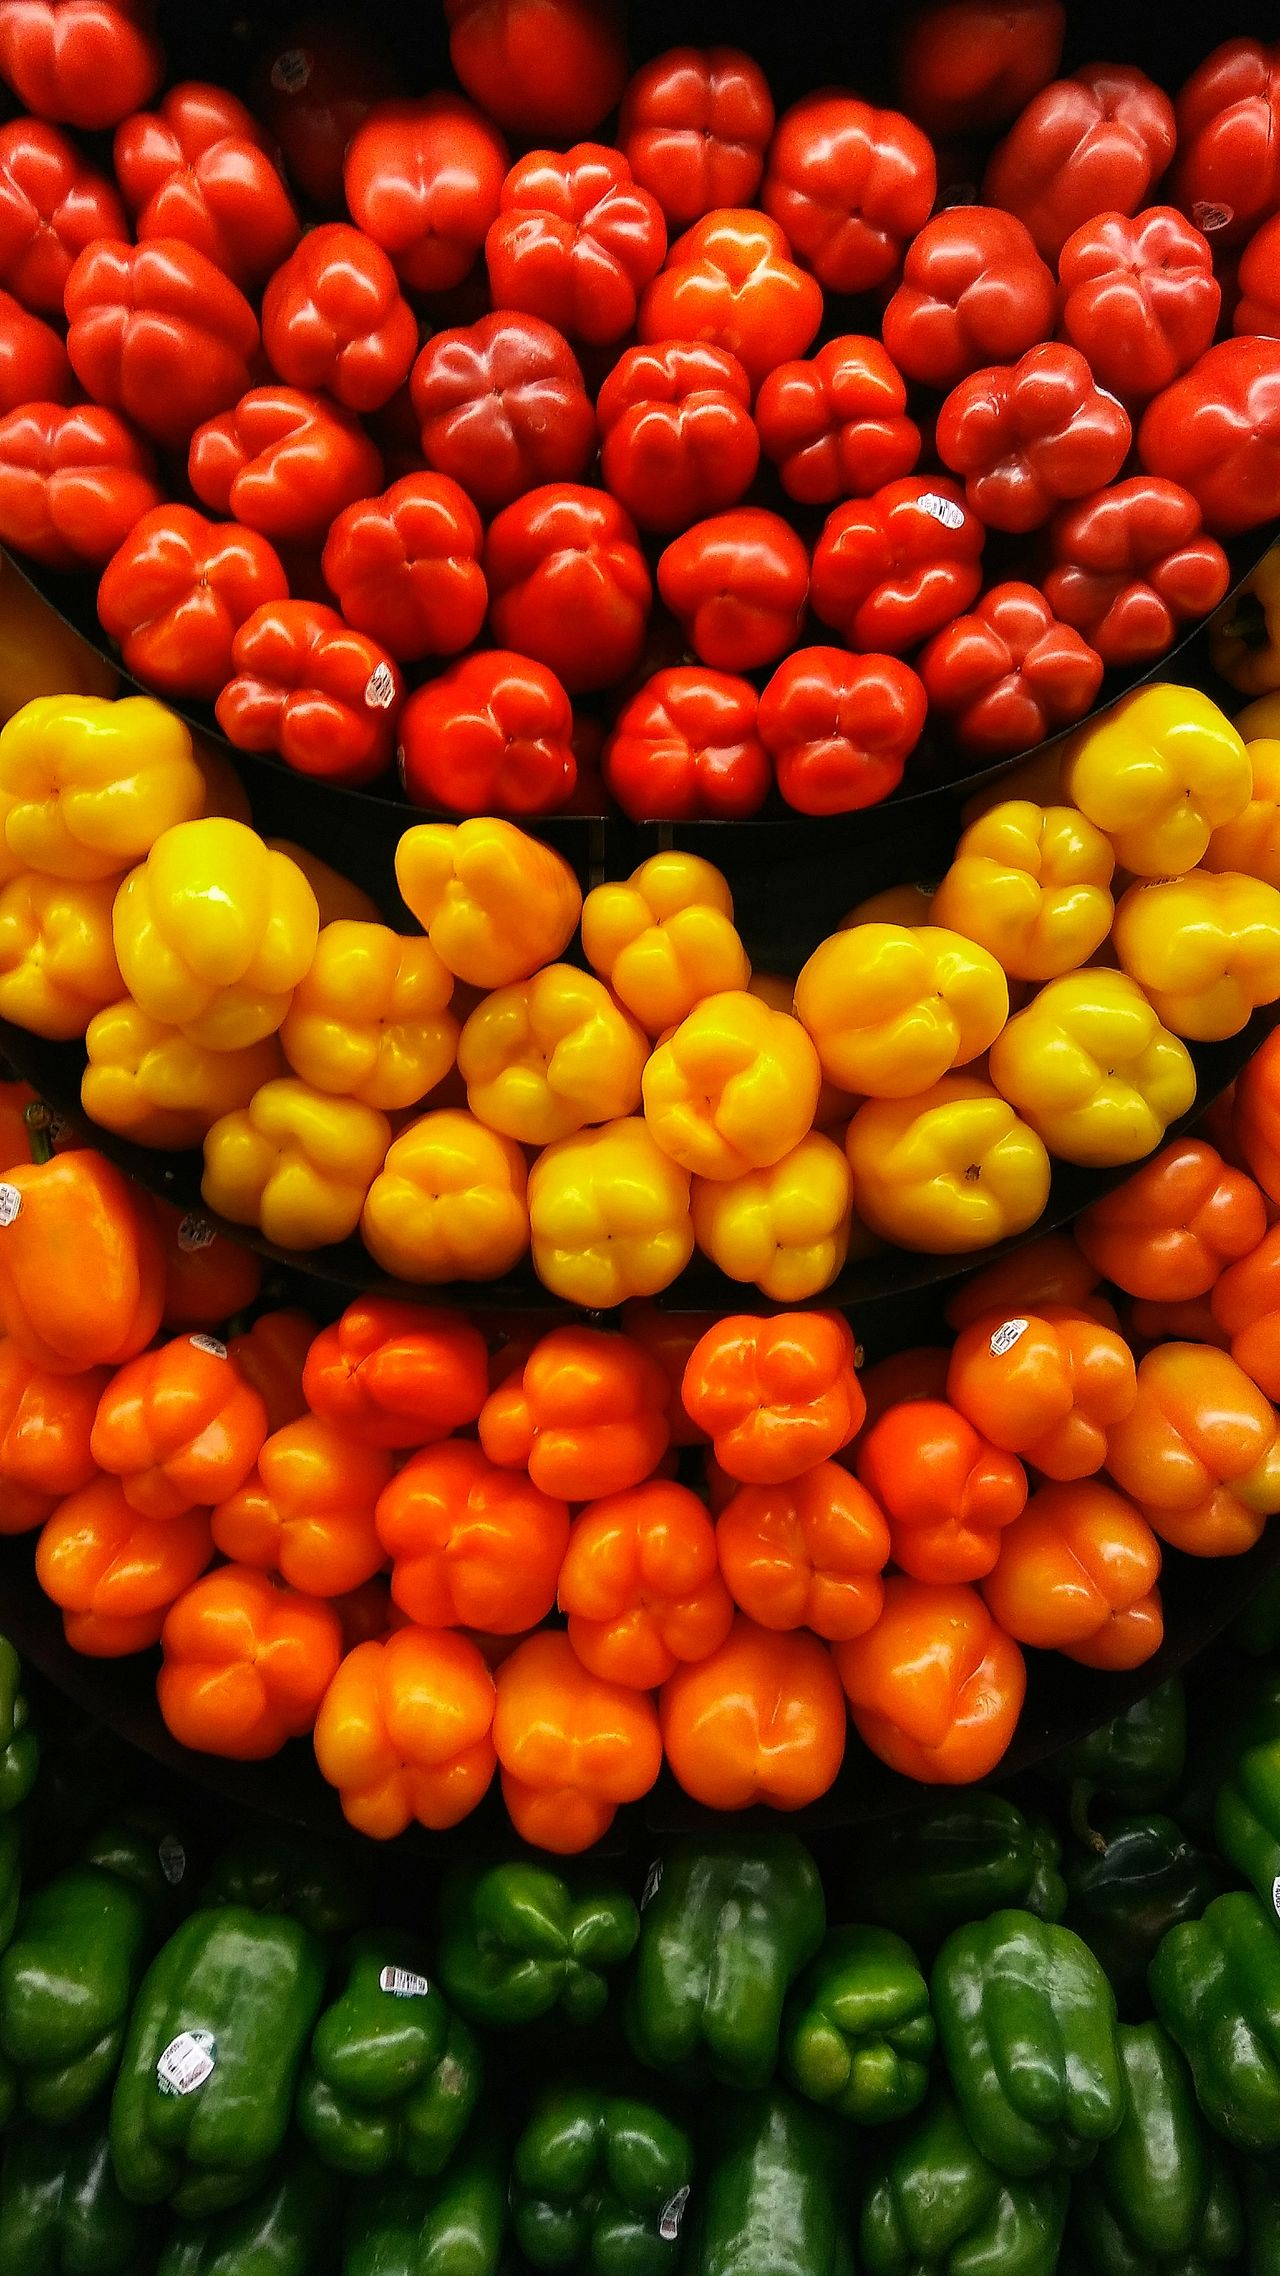 Check This Out Red Bell Pepper Yellow Bell Pepper Orange Bell Peppers Green Bell Pepper